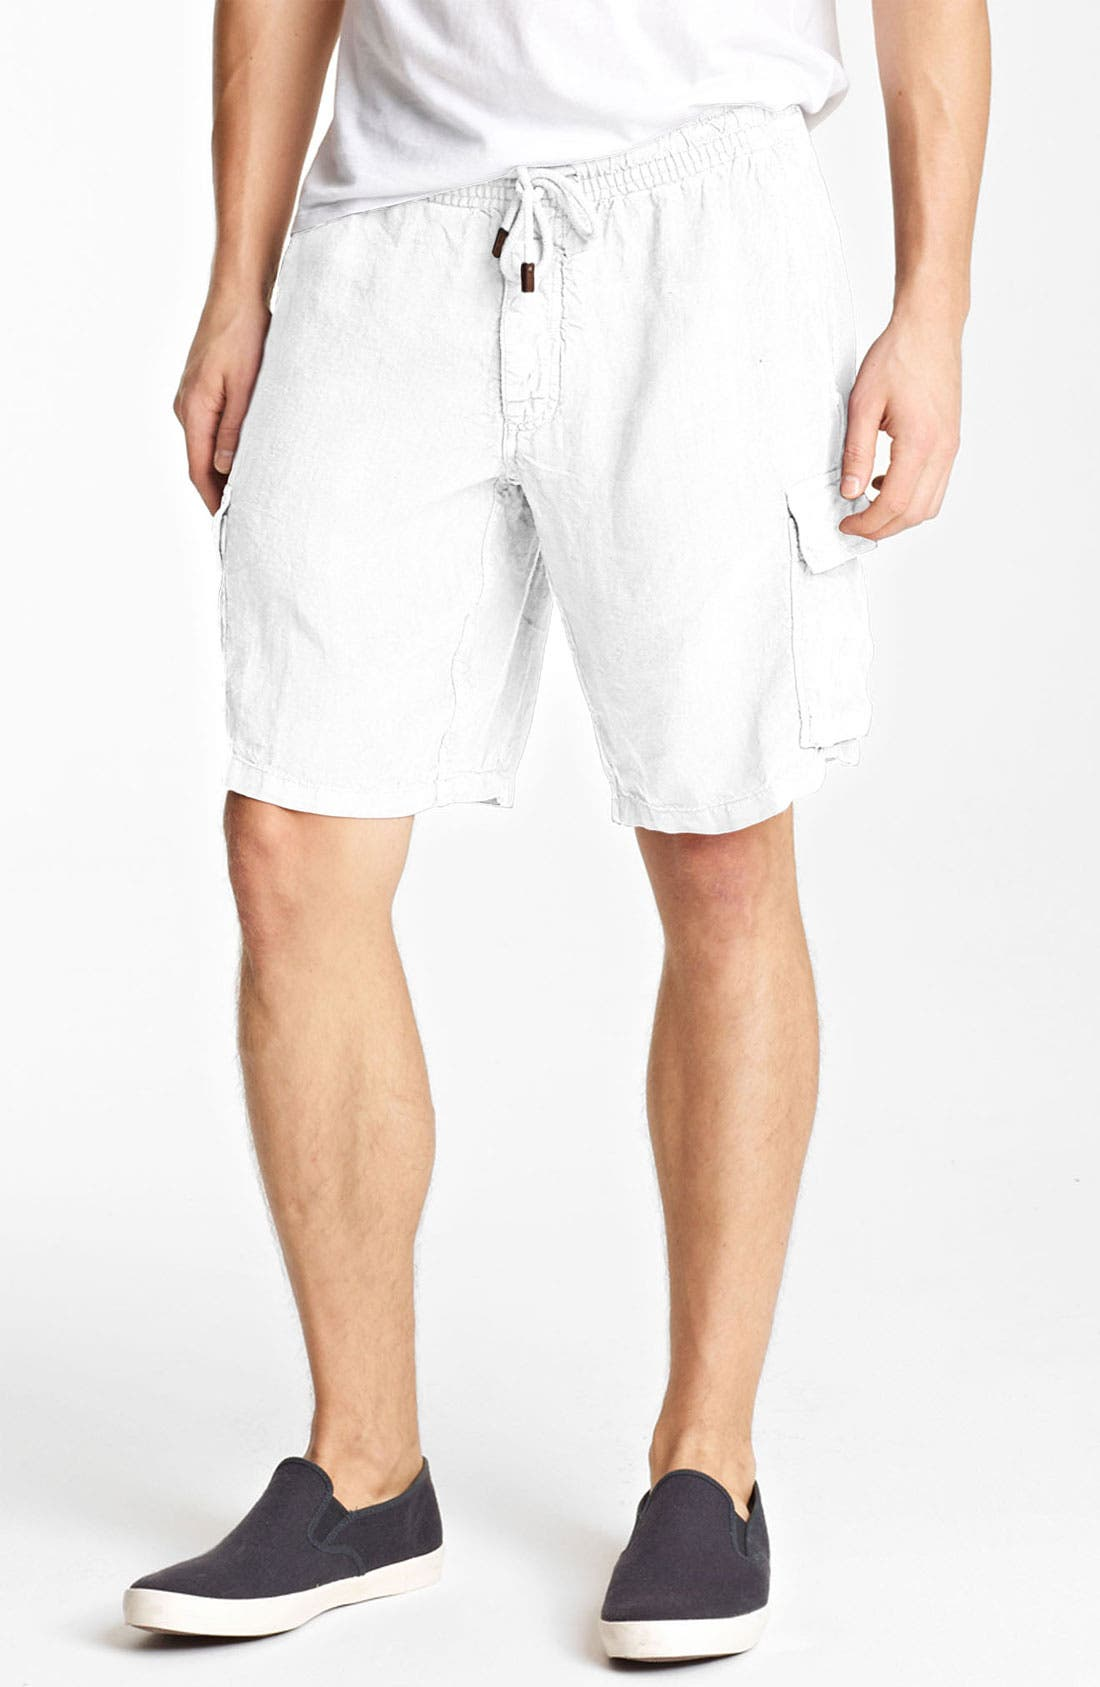 Alternate Image 1 Selected - Vilebrequin 'Baie' Linen Cargo Shorts